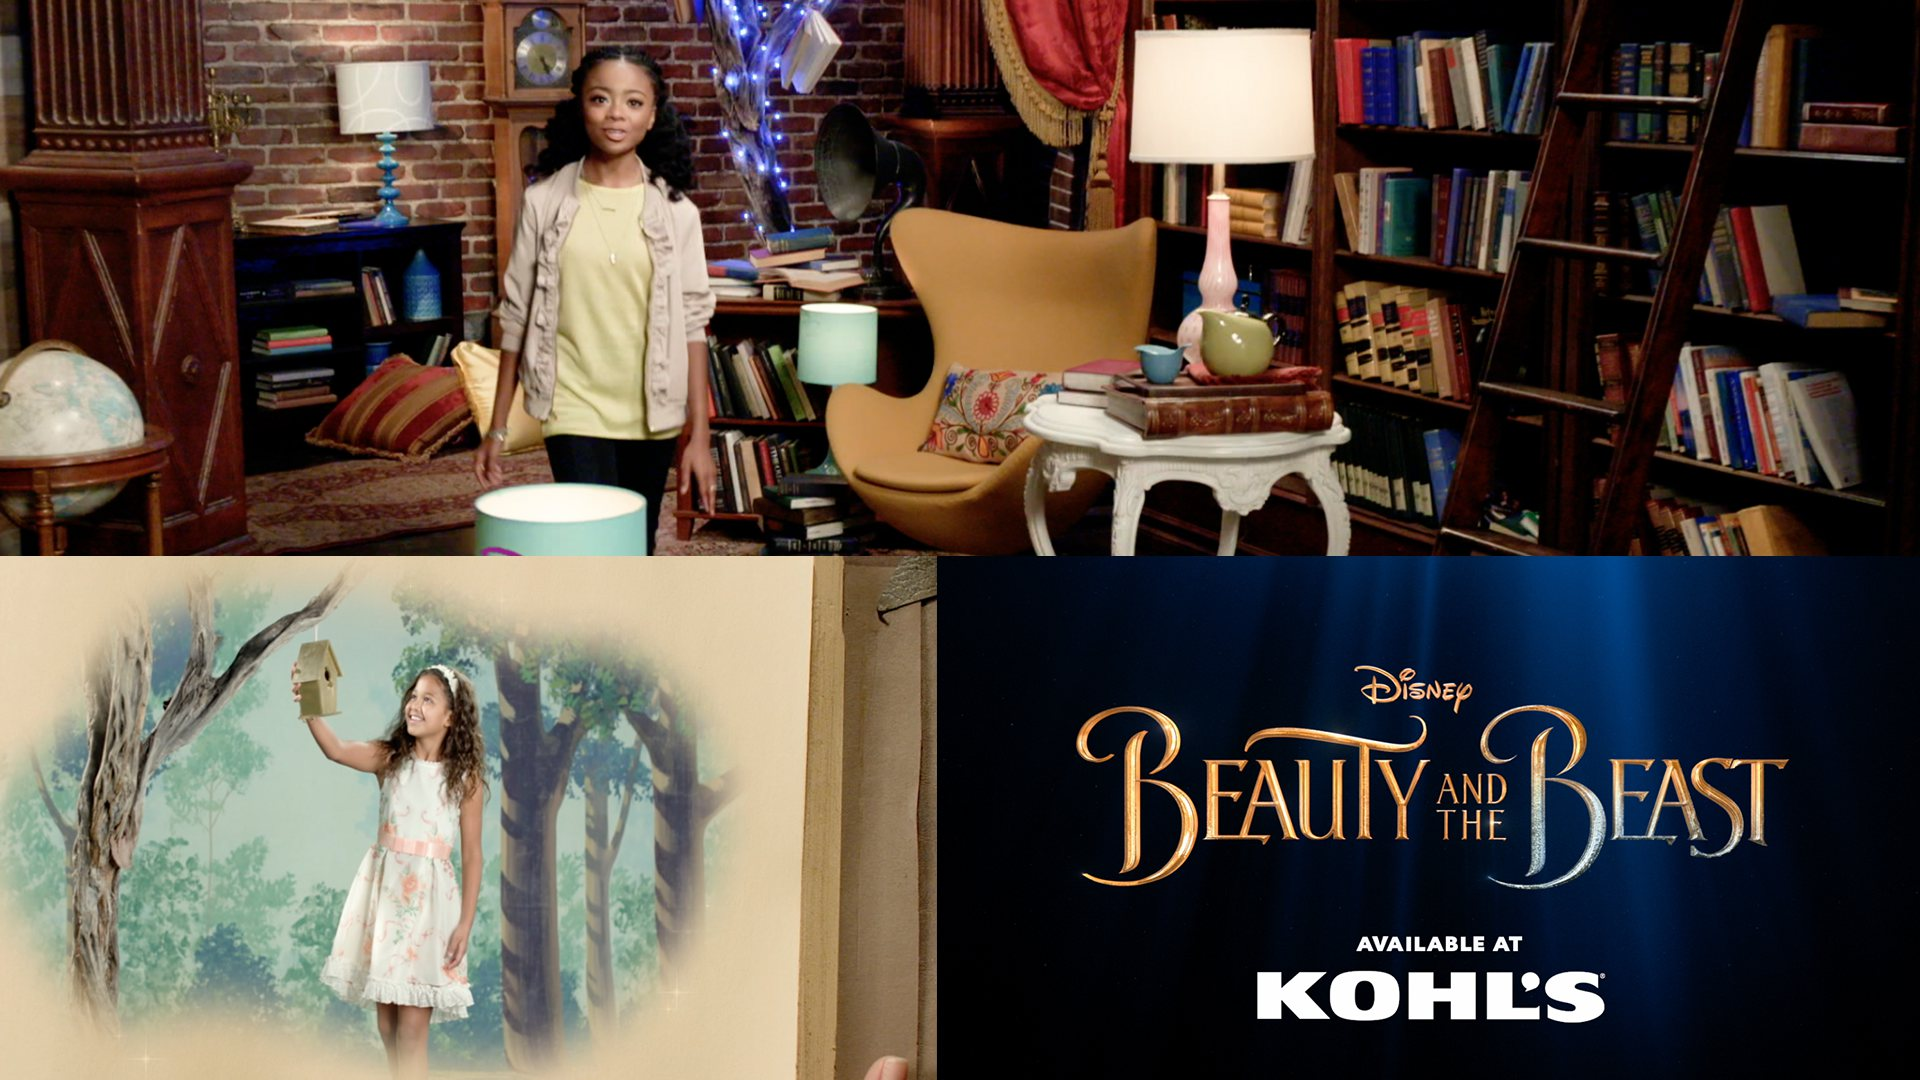 Kohls Disney clothing line